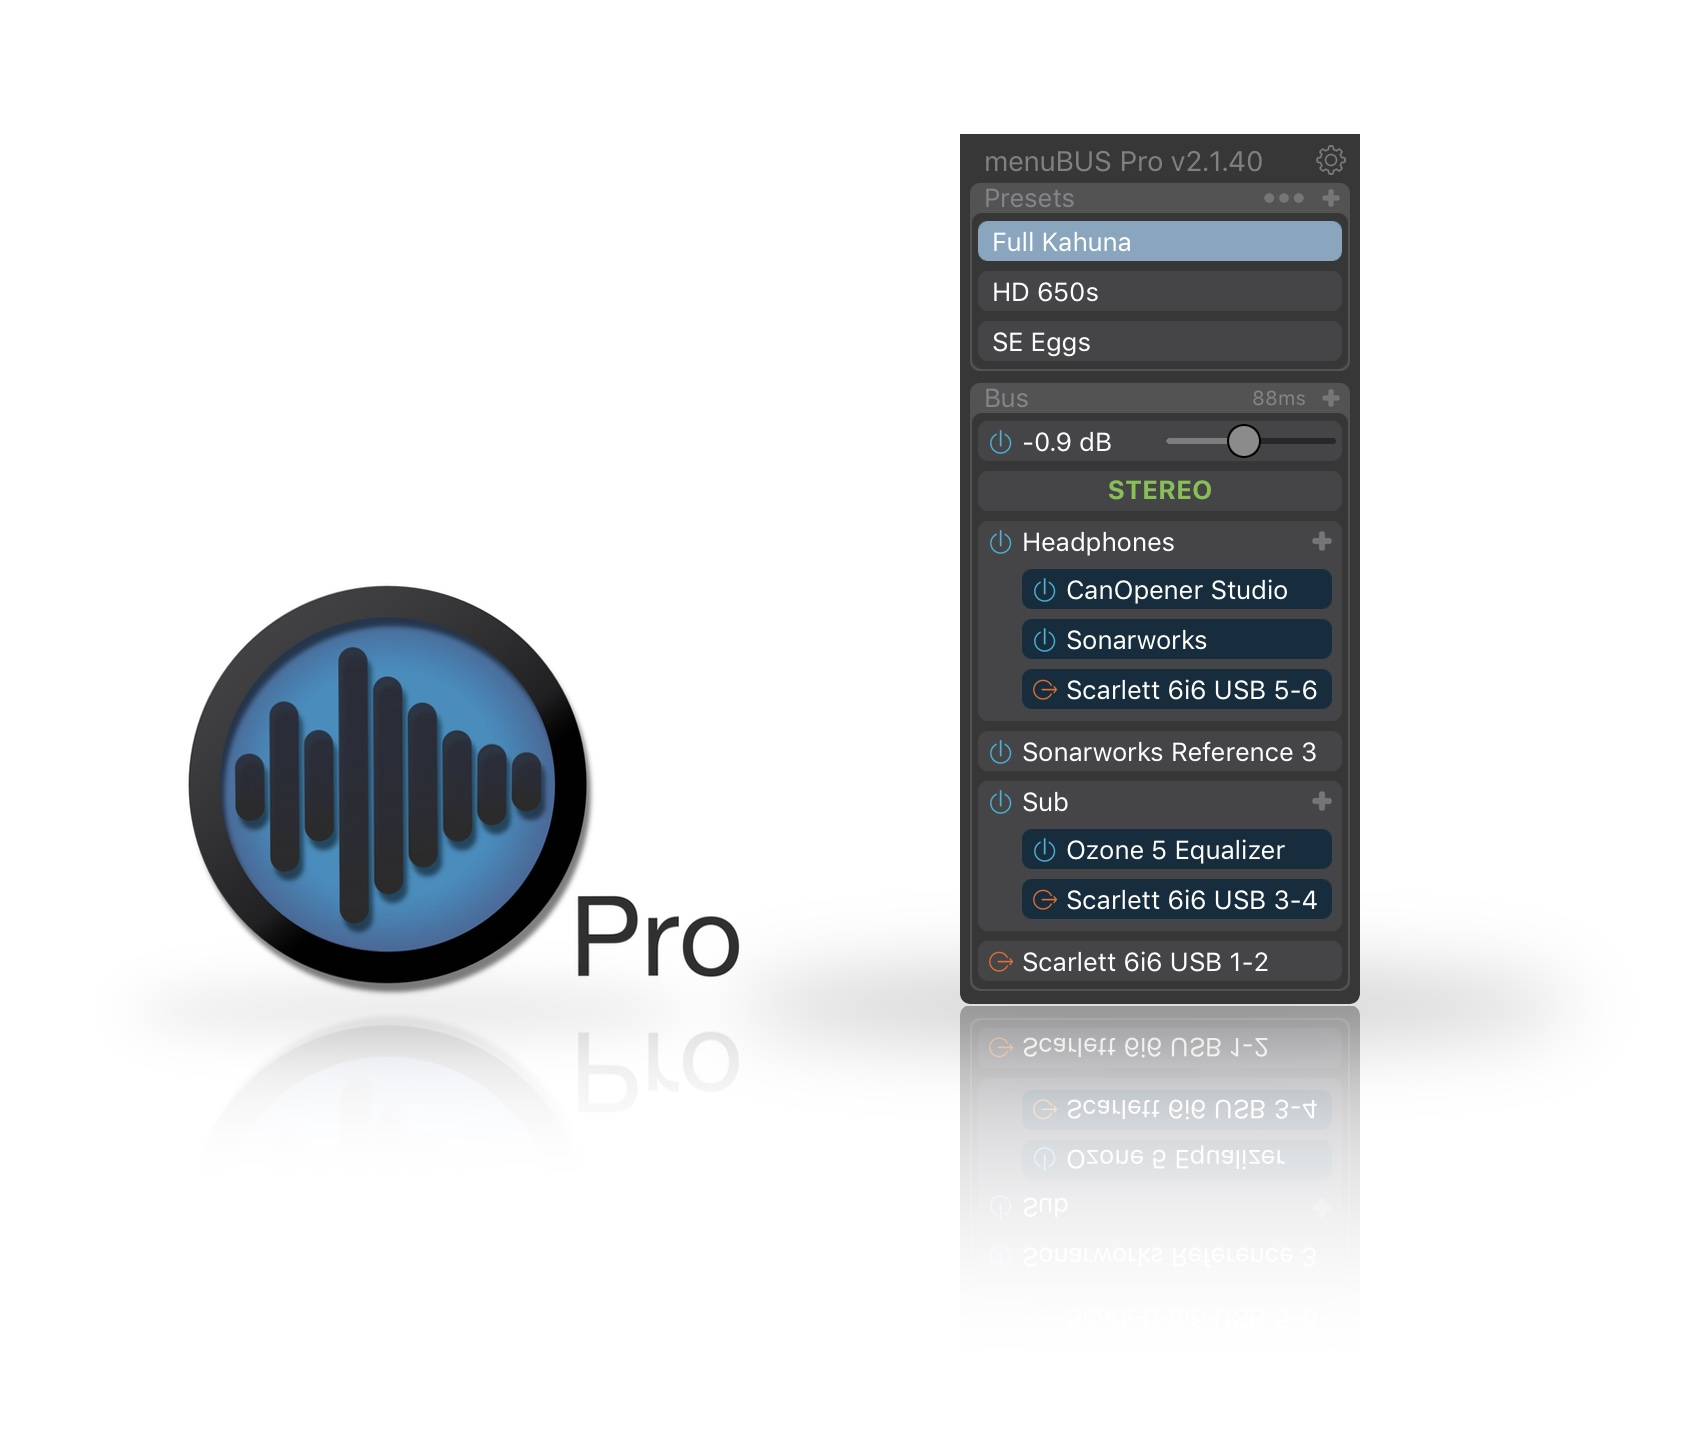 Menubus Pro V2 Released Gearslutz Portable Live Sound Setup Audio Community Is A Menu Bar App For Macos That Allows Users To Run Plugins On The Systems Output Before Applying Effects System